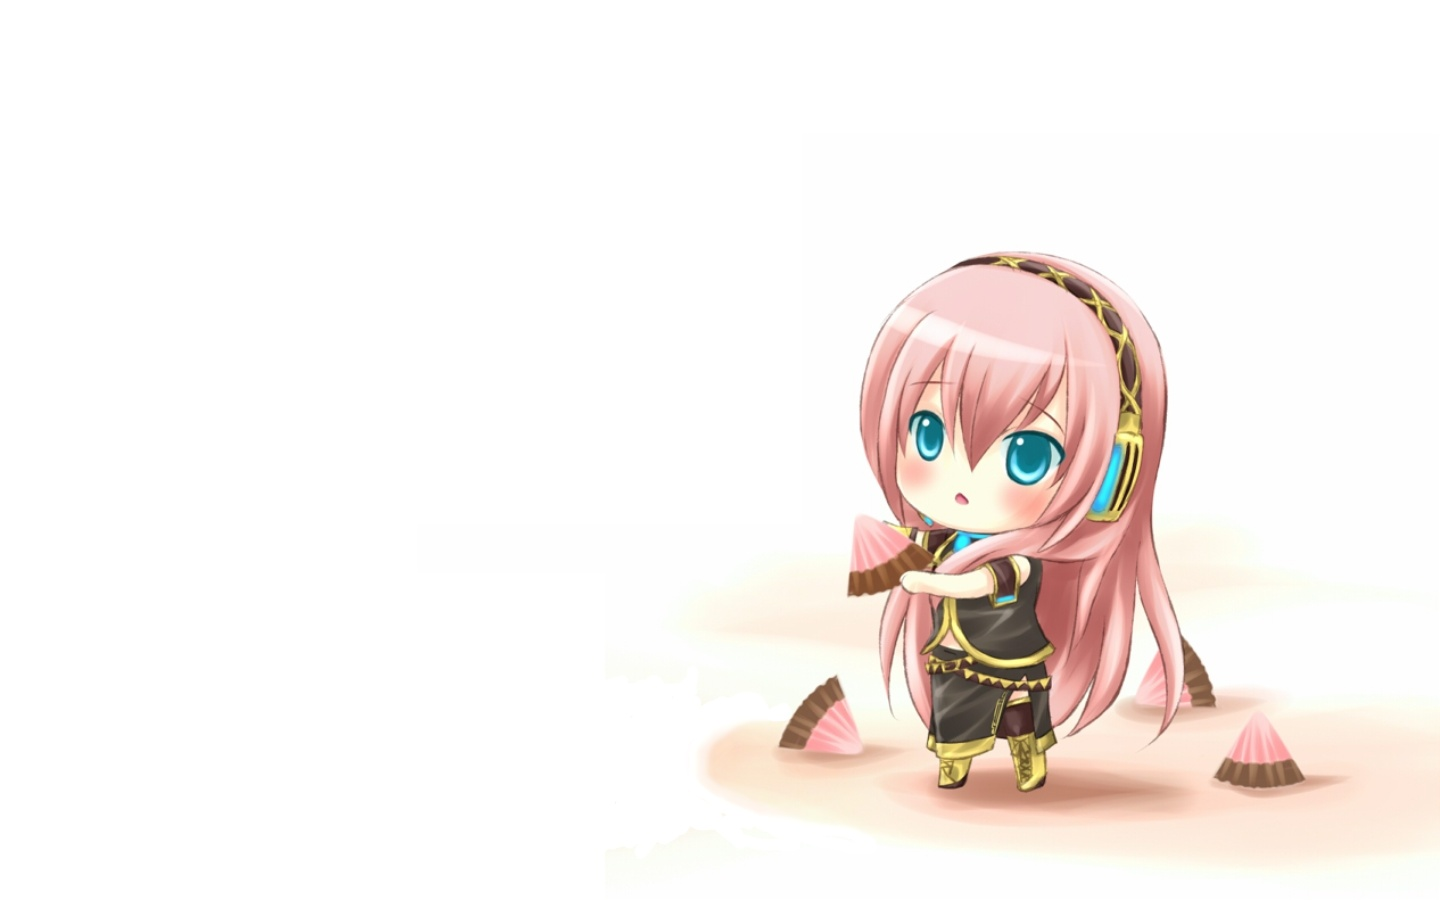 Anime Chibi Vocaloid Cool Wallpapers I HD Images 1440x900